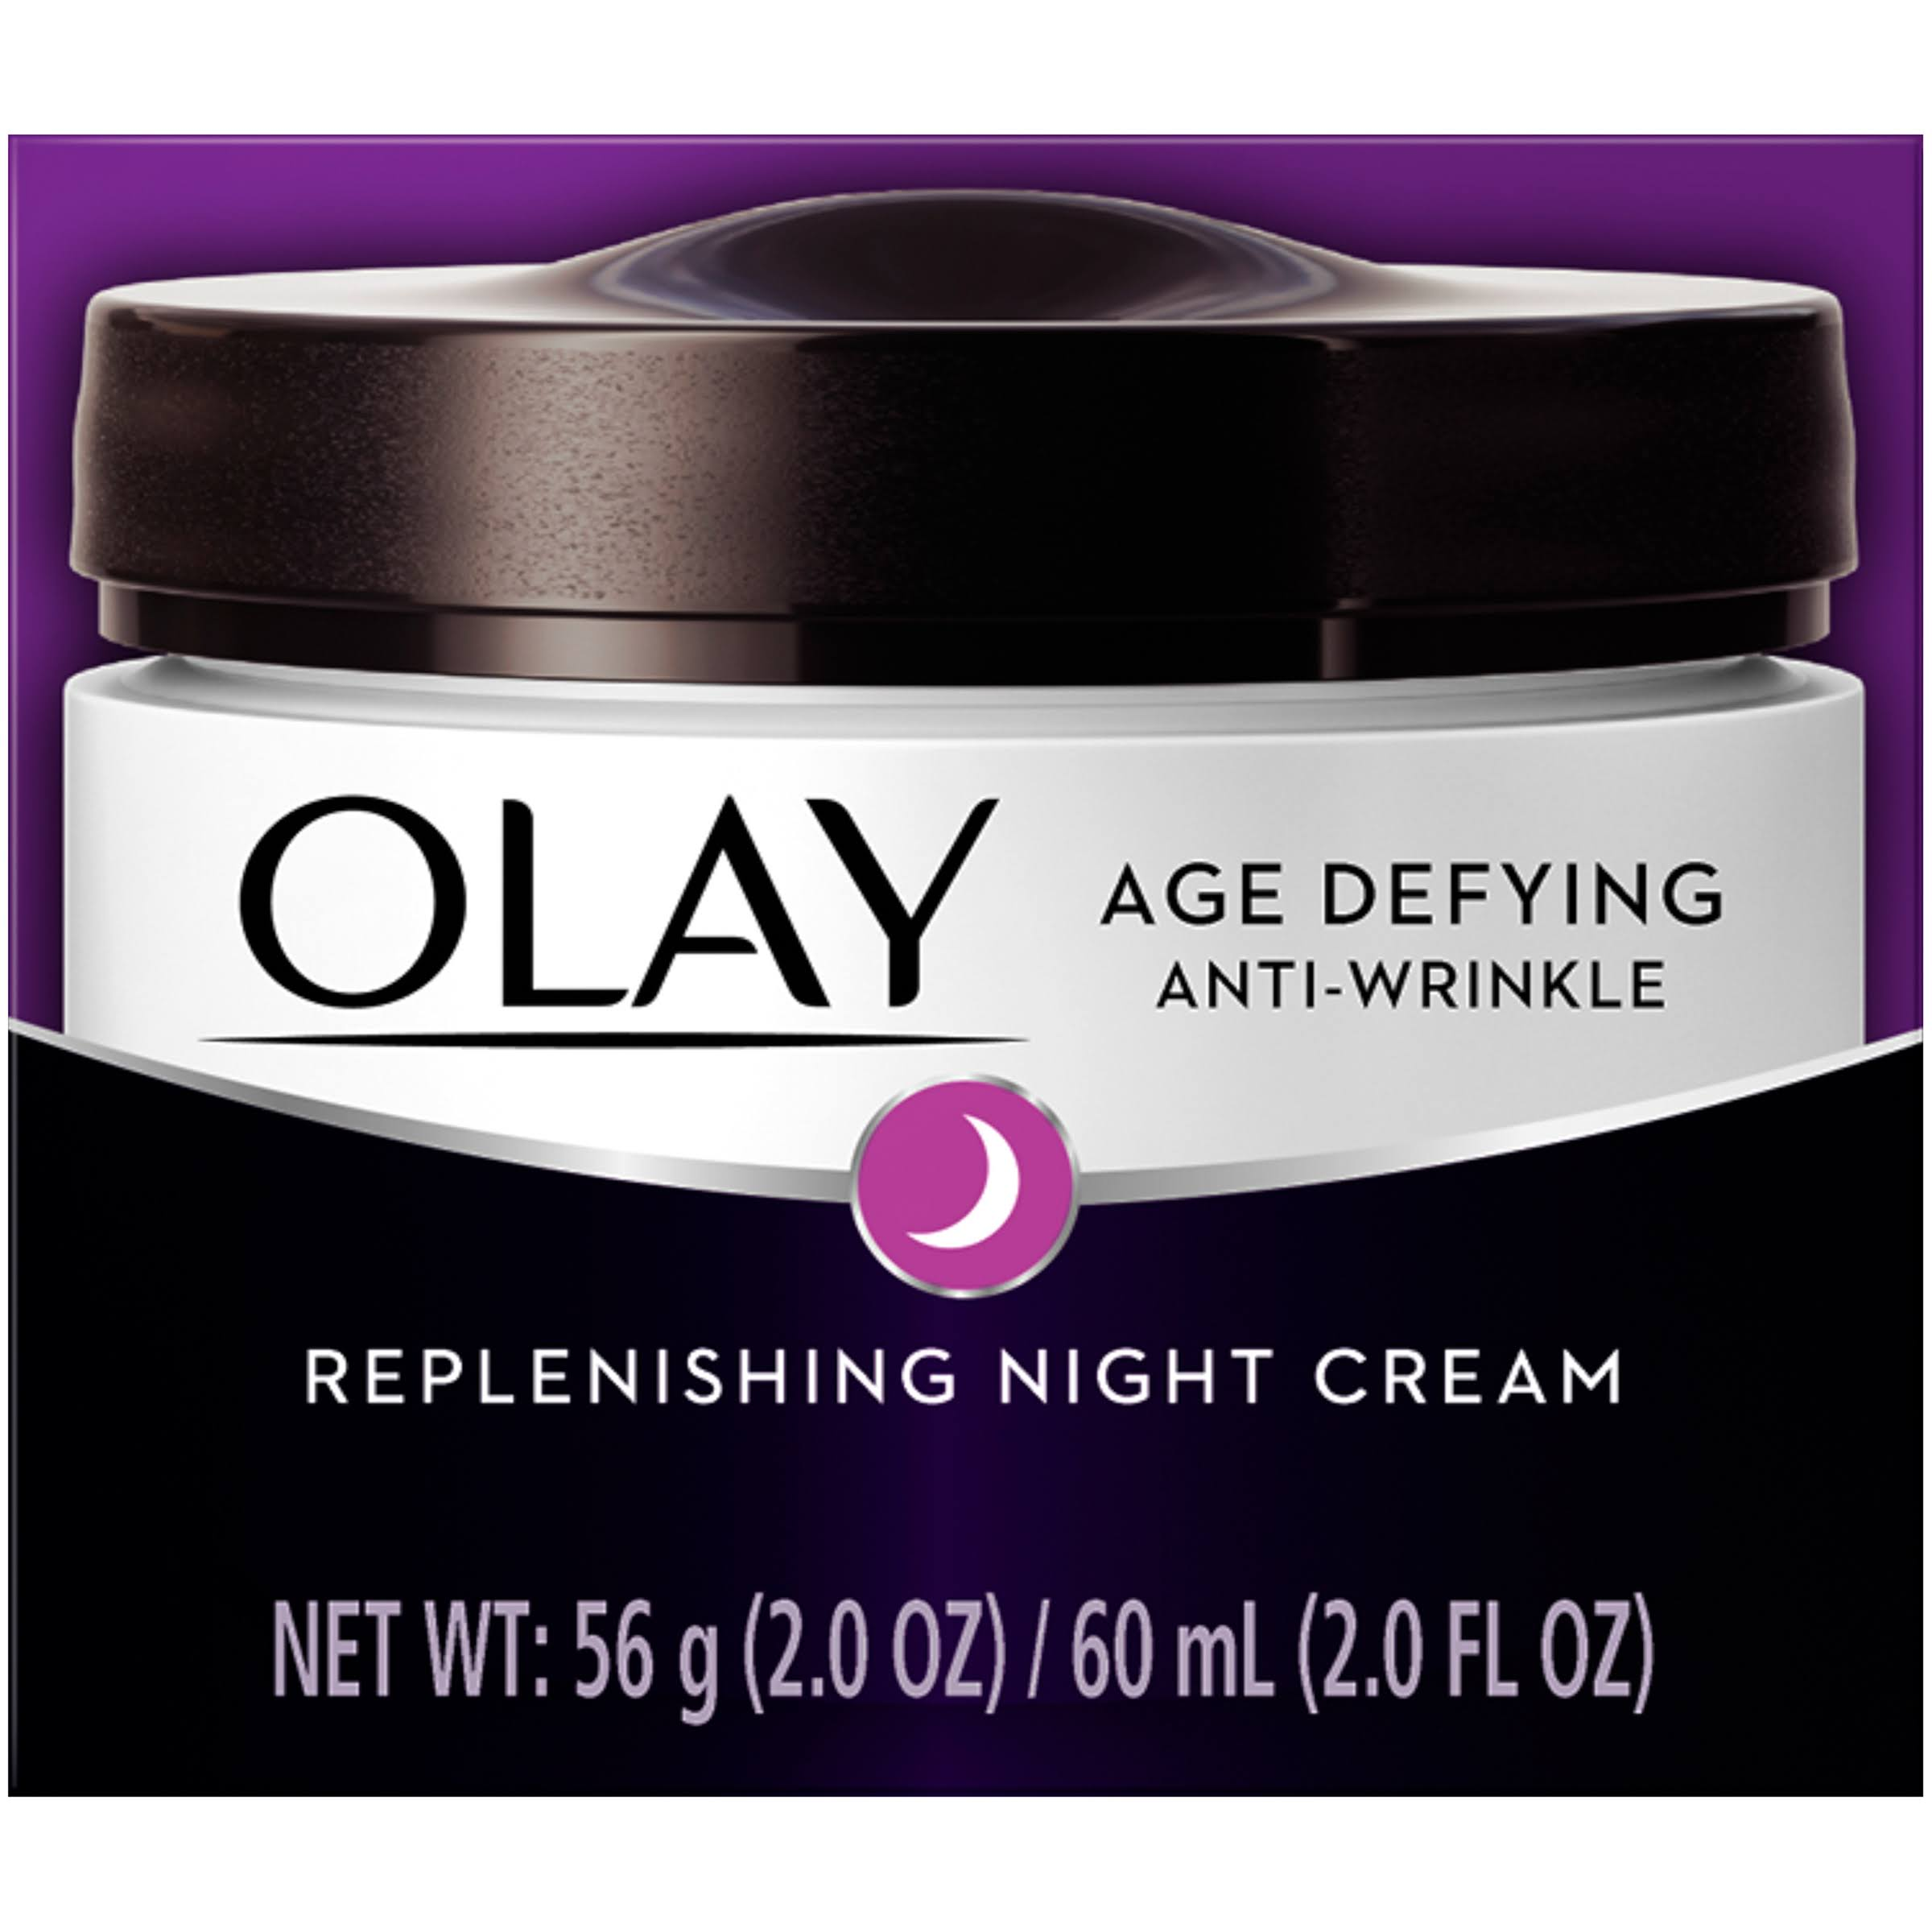 Olay Age Defying Anti Wrinkle Night Cream Oil Free - 2 Oz, 2 Pack